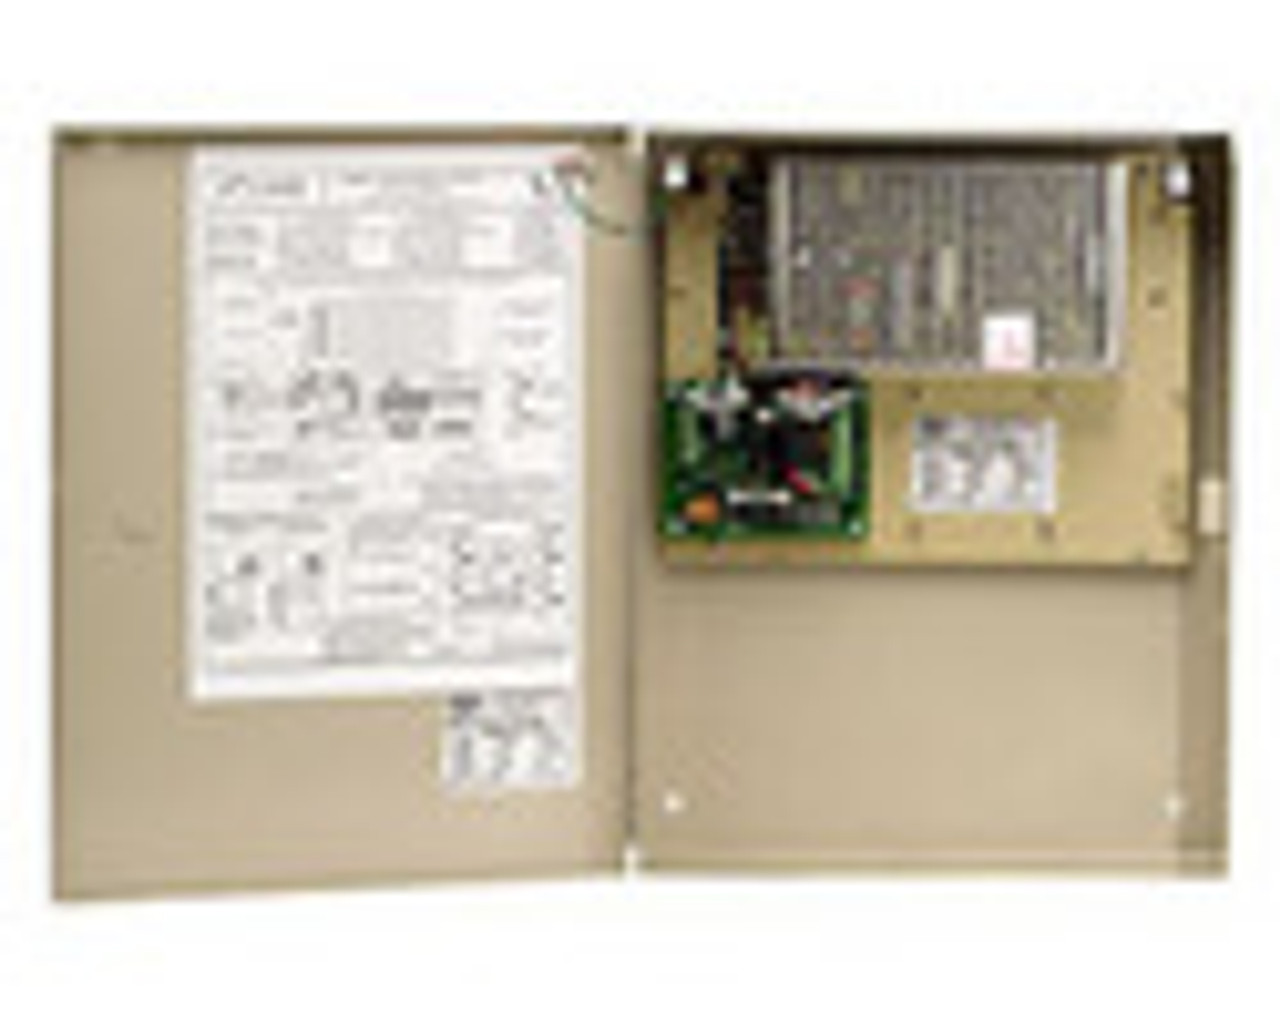 5600-12-ILB DynaLock Multi Zone Heavy Duty 12 VDC Power Supply with Interlock Logic Board